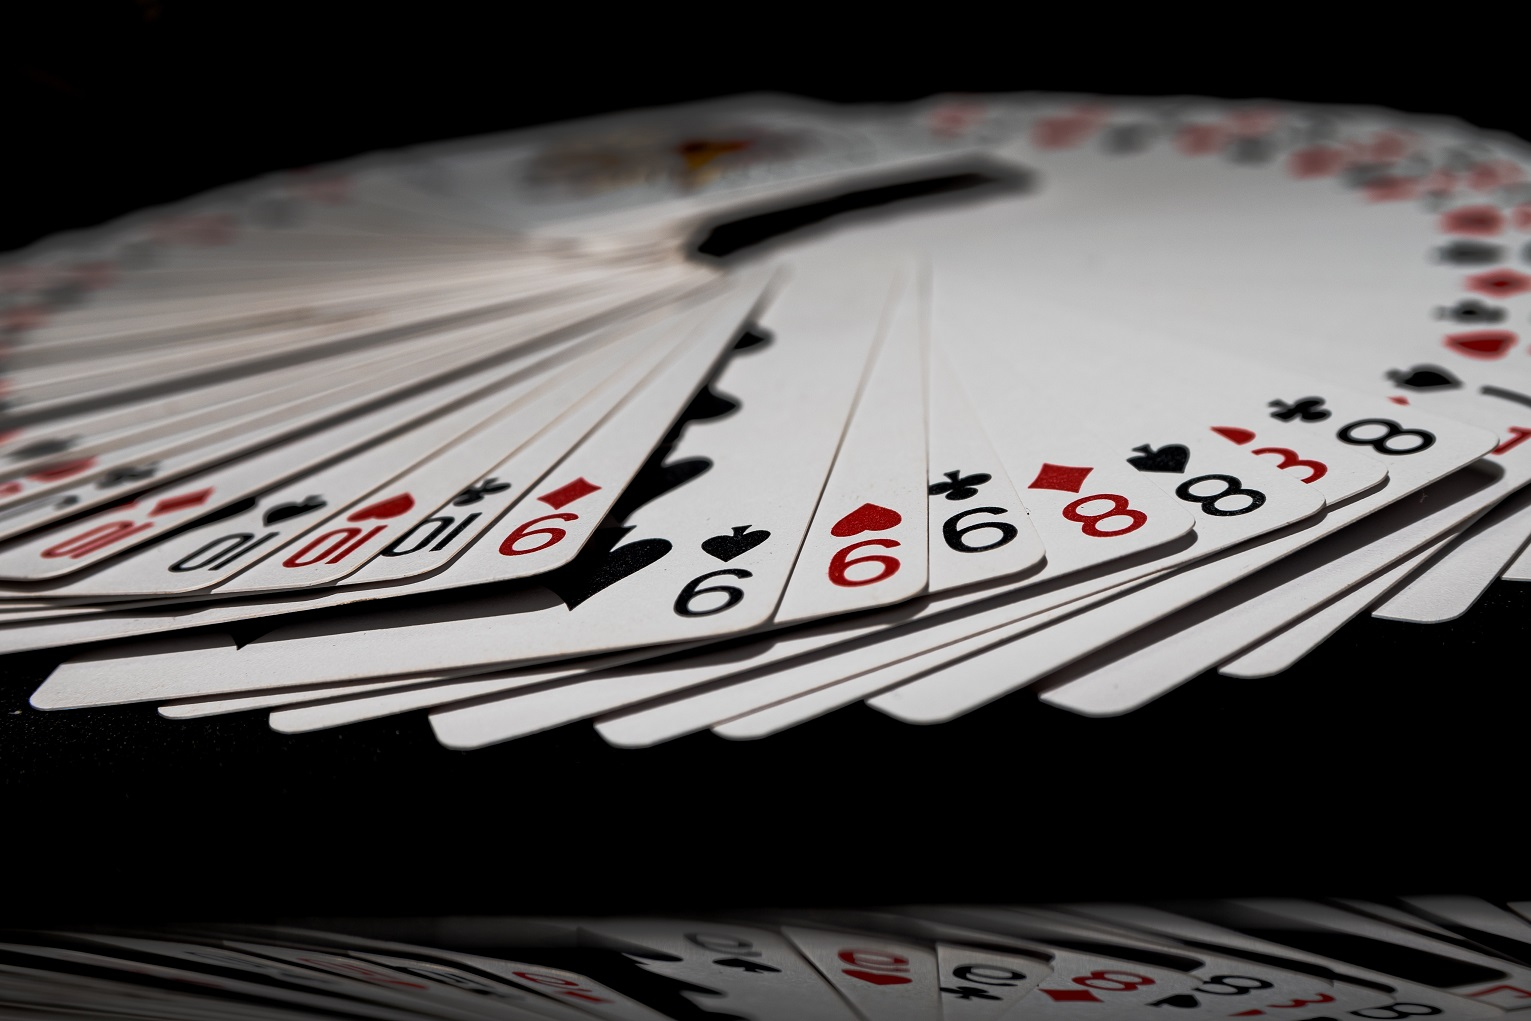 Proof-Of-Stake, cards flying around